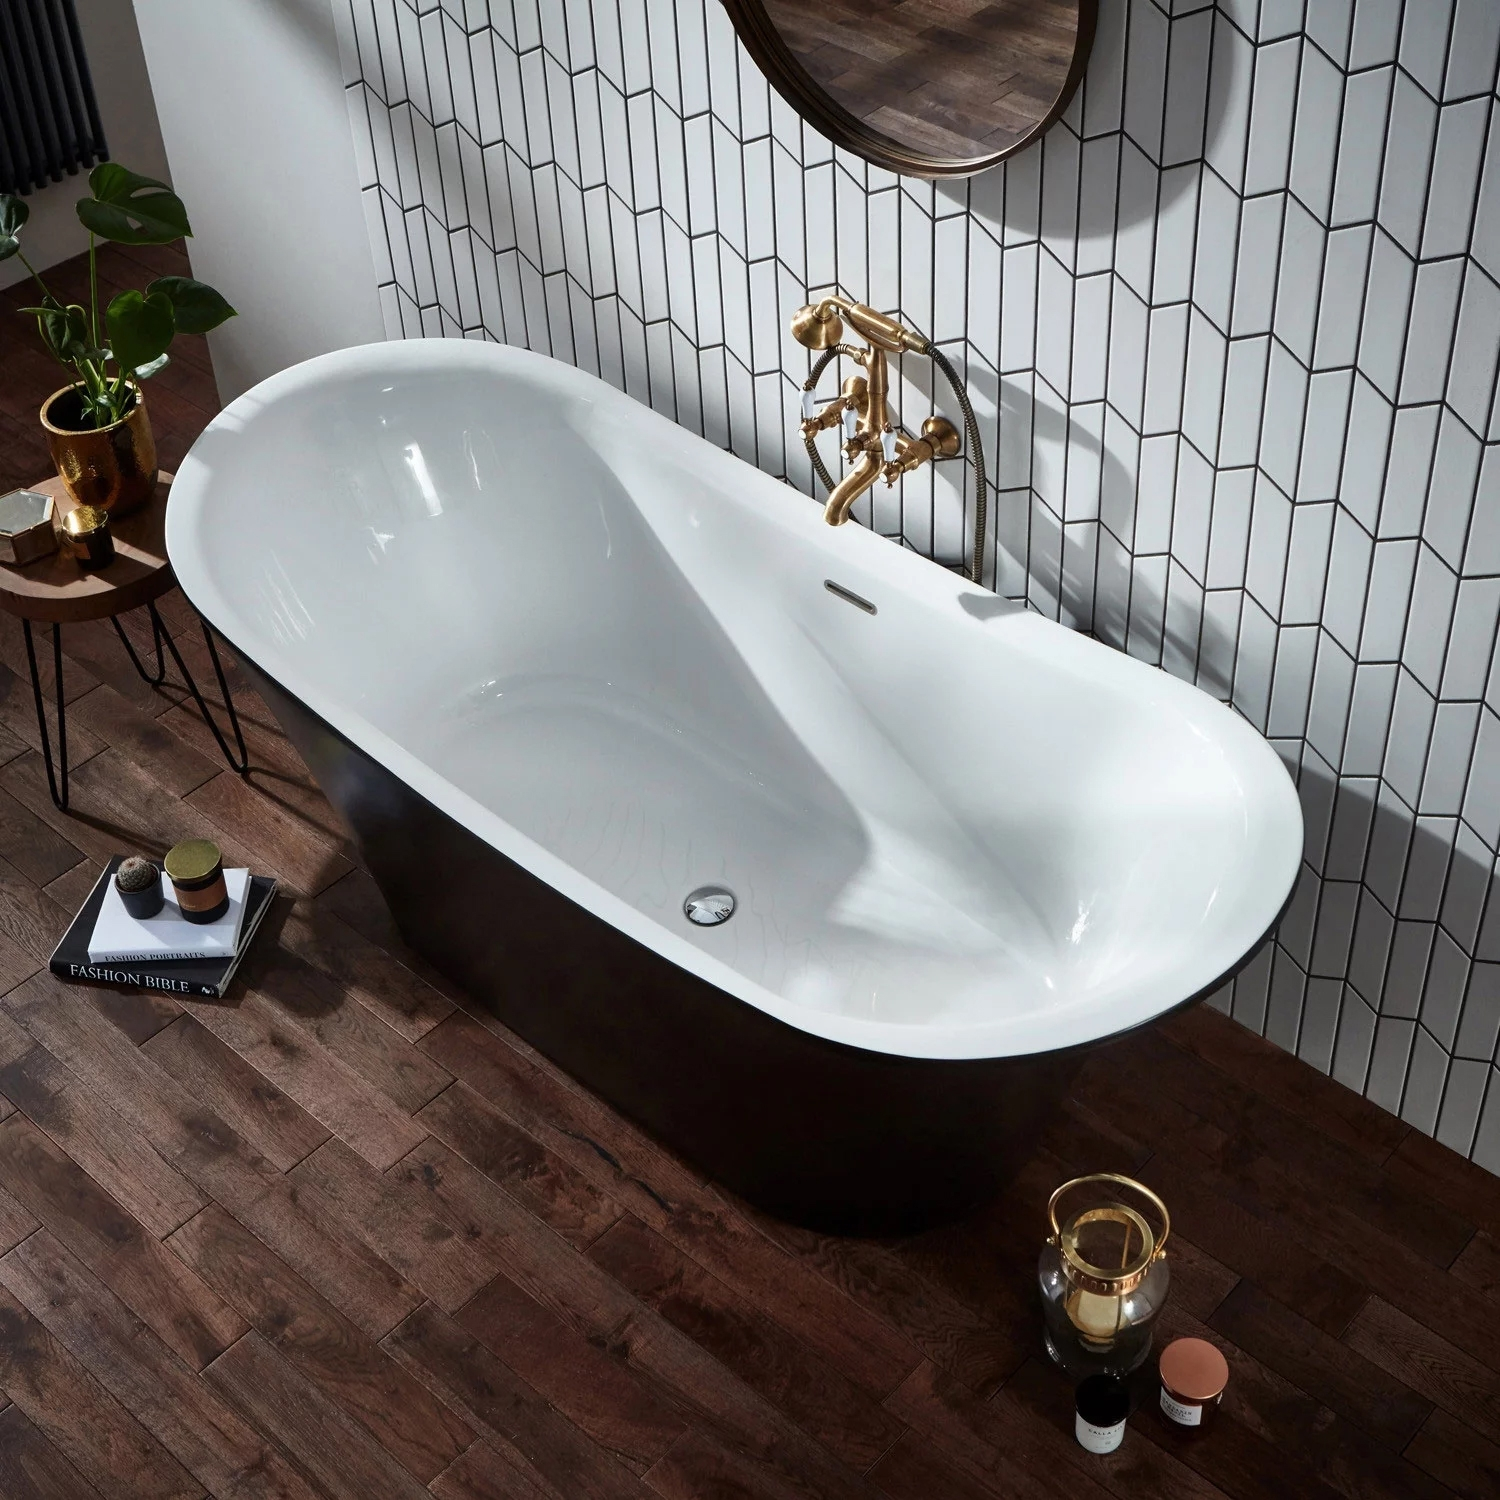 Verona Bow Graphite Traditional Freestanding Bath 1800mm x 800mm integrated Waste and Black Plinth